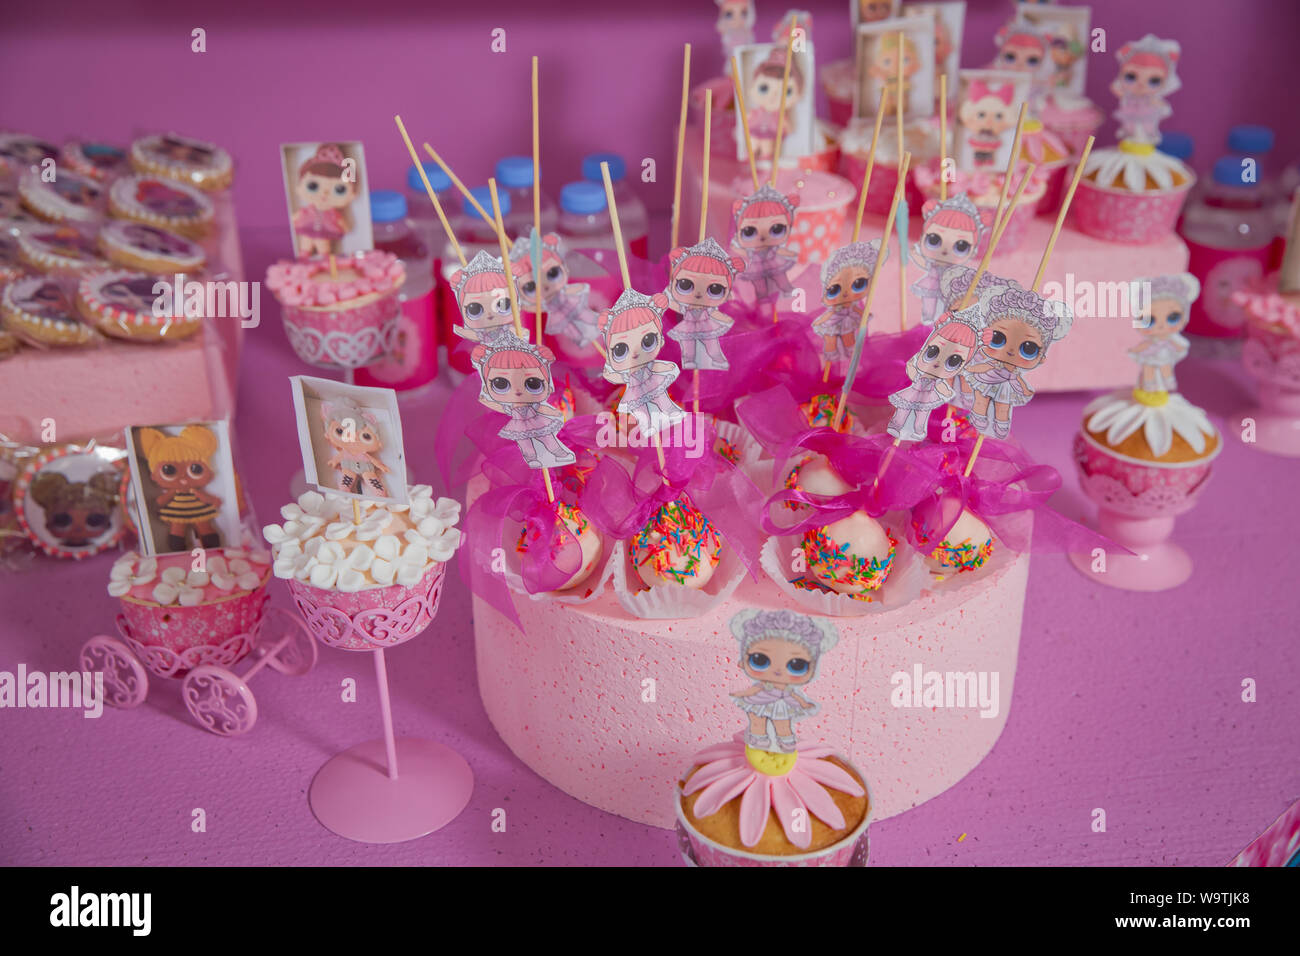 Baku Azerbaijan 07 31 2018 Lol Birthday Cake For Girls Pastry Chef Decorates A Cake With Ginger Homemade Gingerbread Style Doll Lol Top View O Stock Photo Alamy